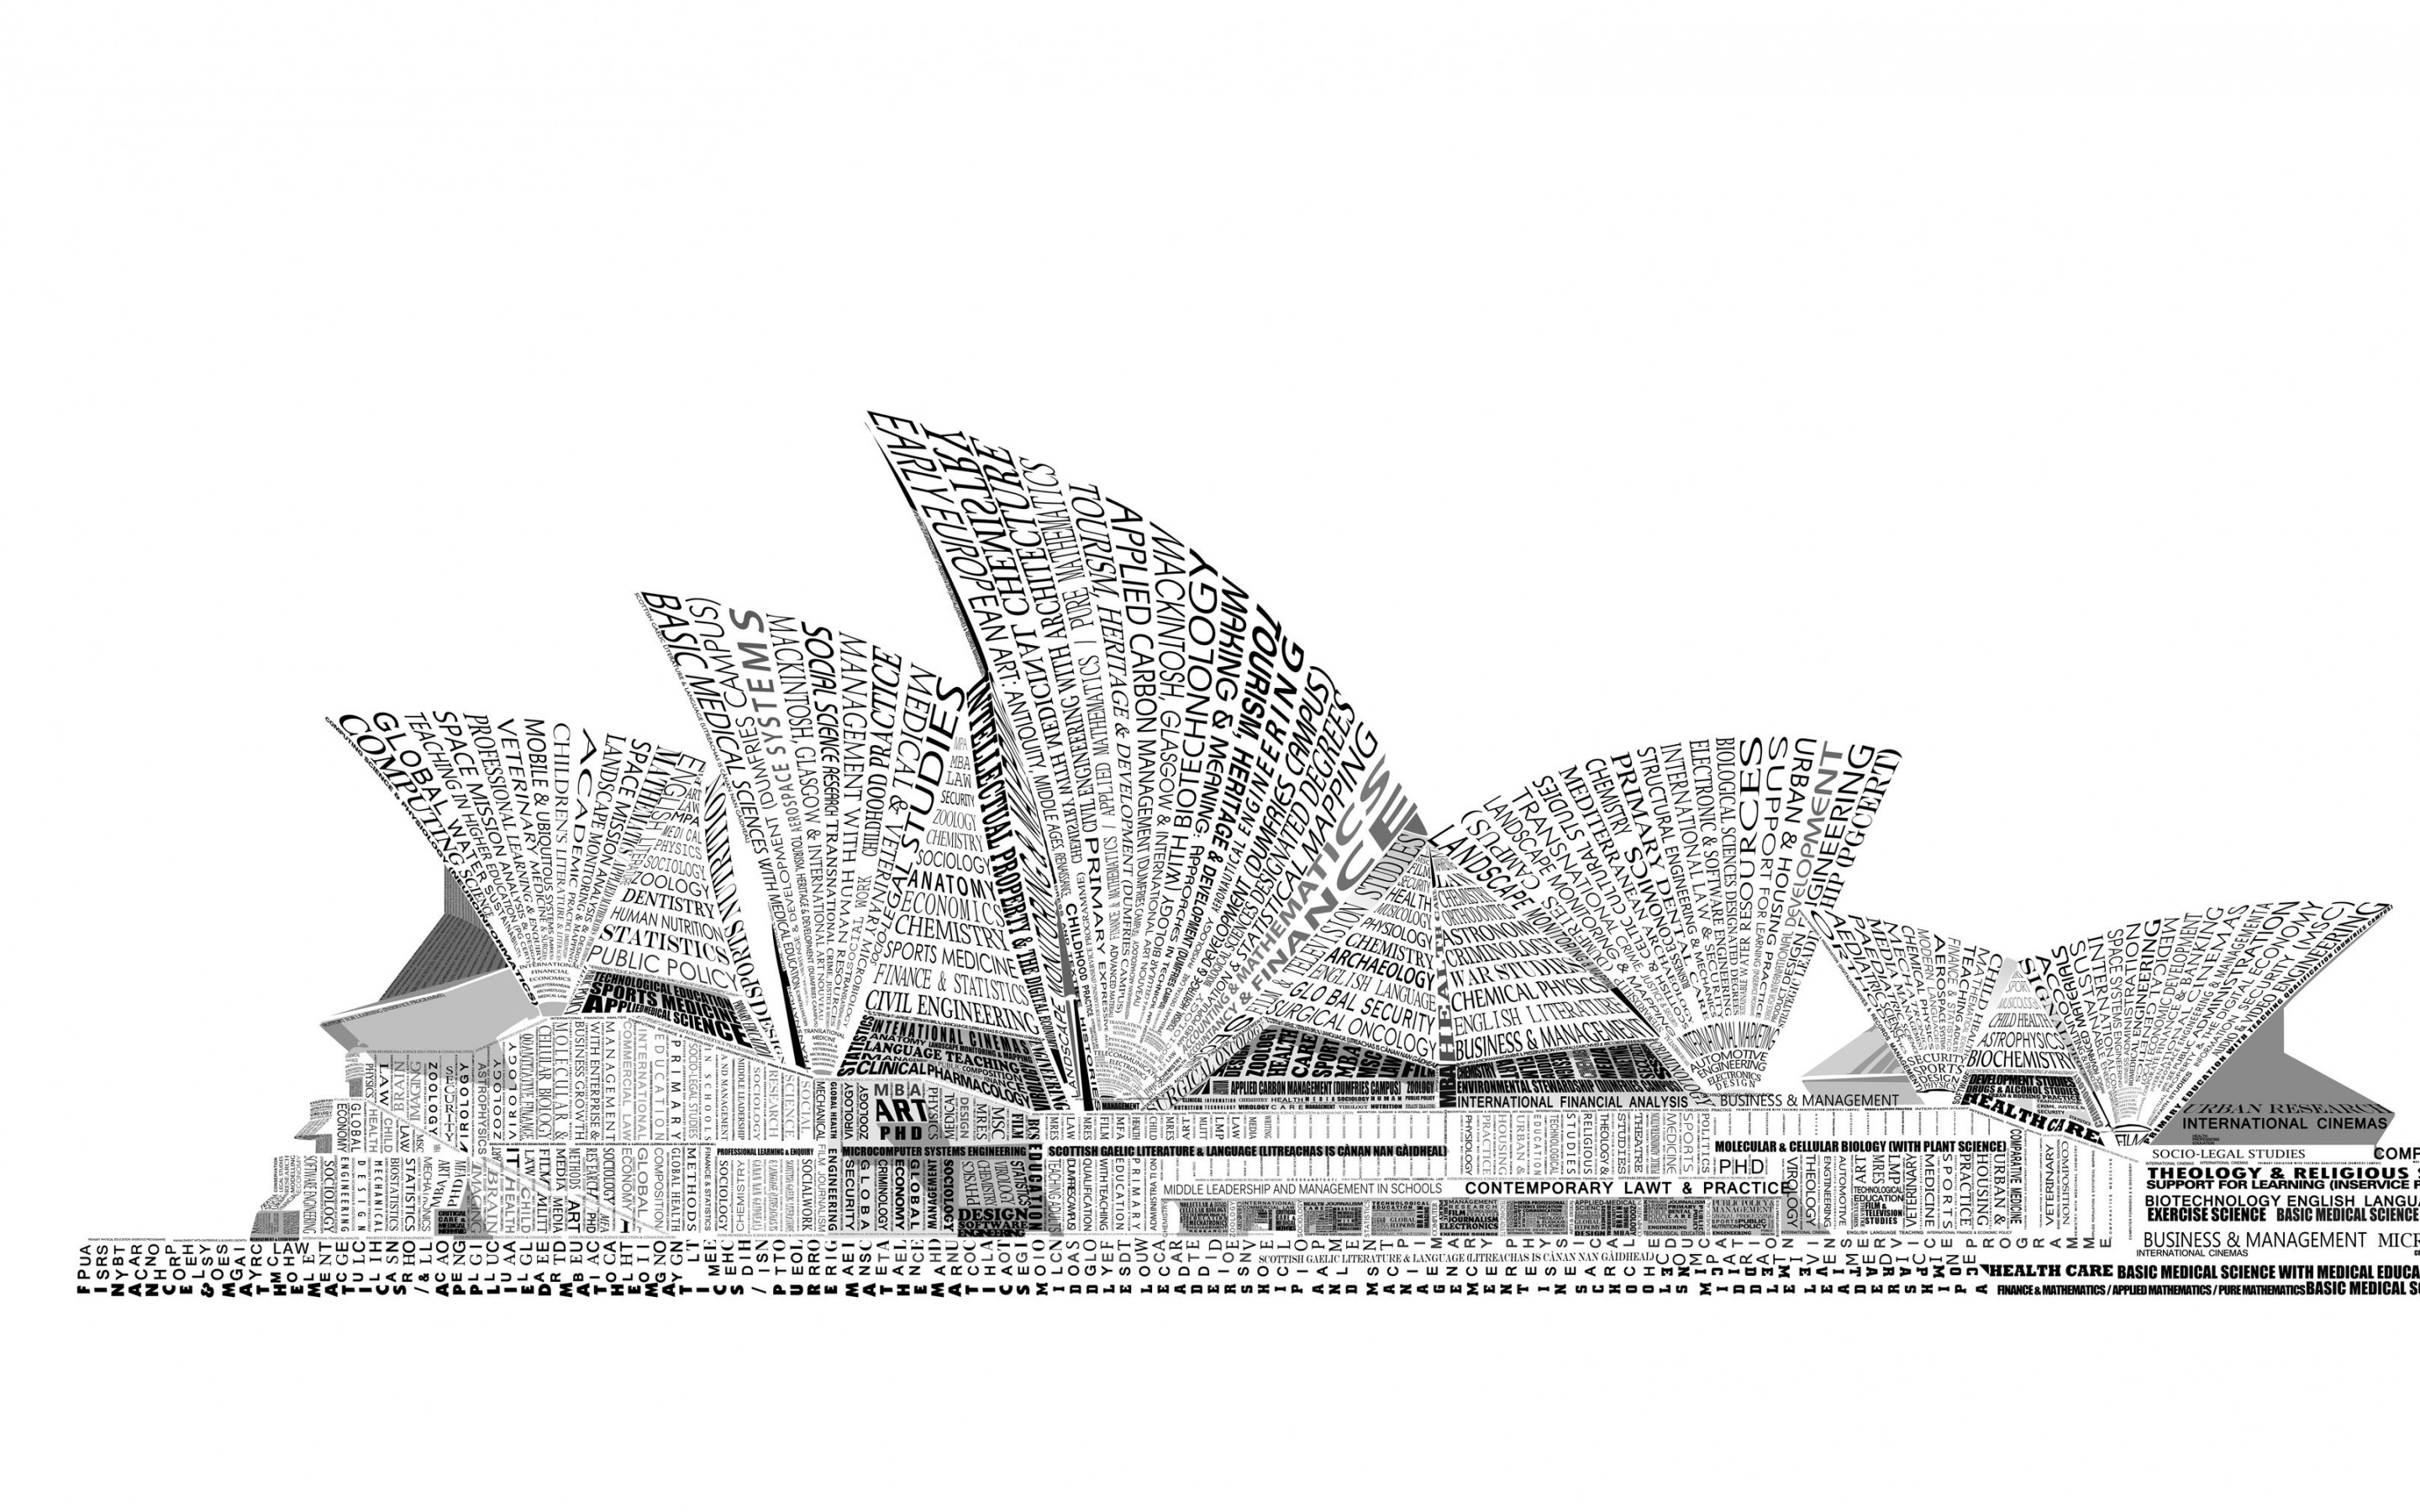 Opera House Sydney Typography Wallpaper for Desktop 2880x1800